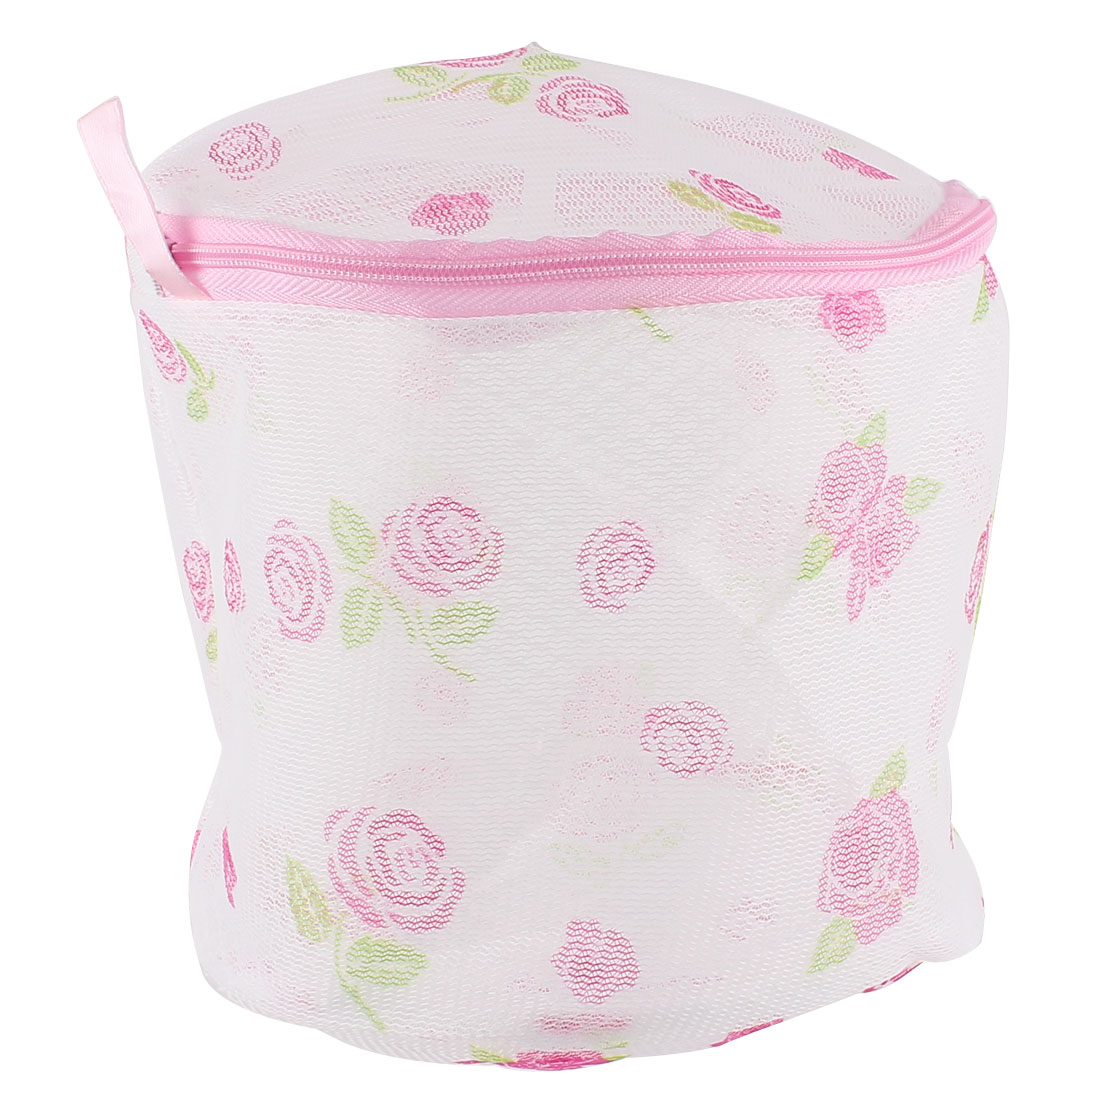 Flower Print Folding Underclothes Bra Stockings Zippered Mesh Washing Bag